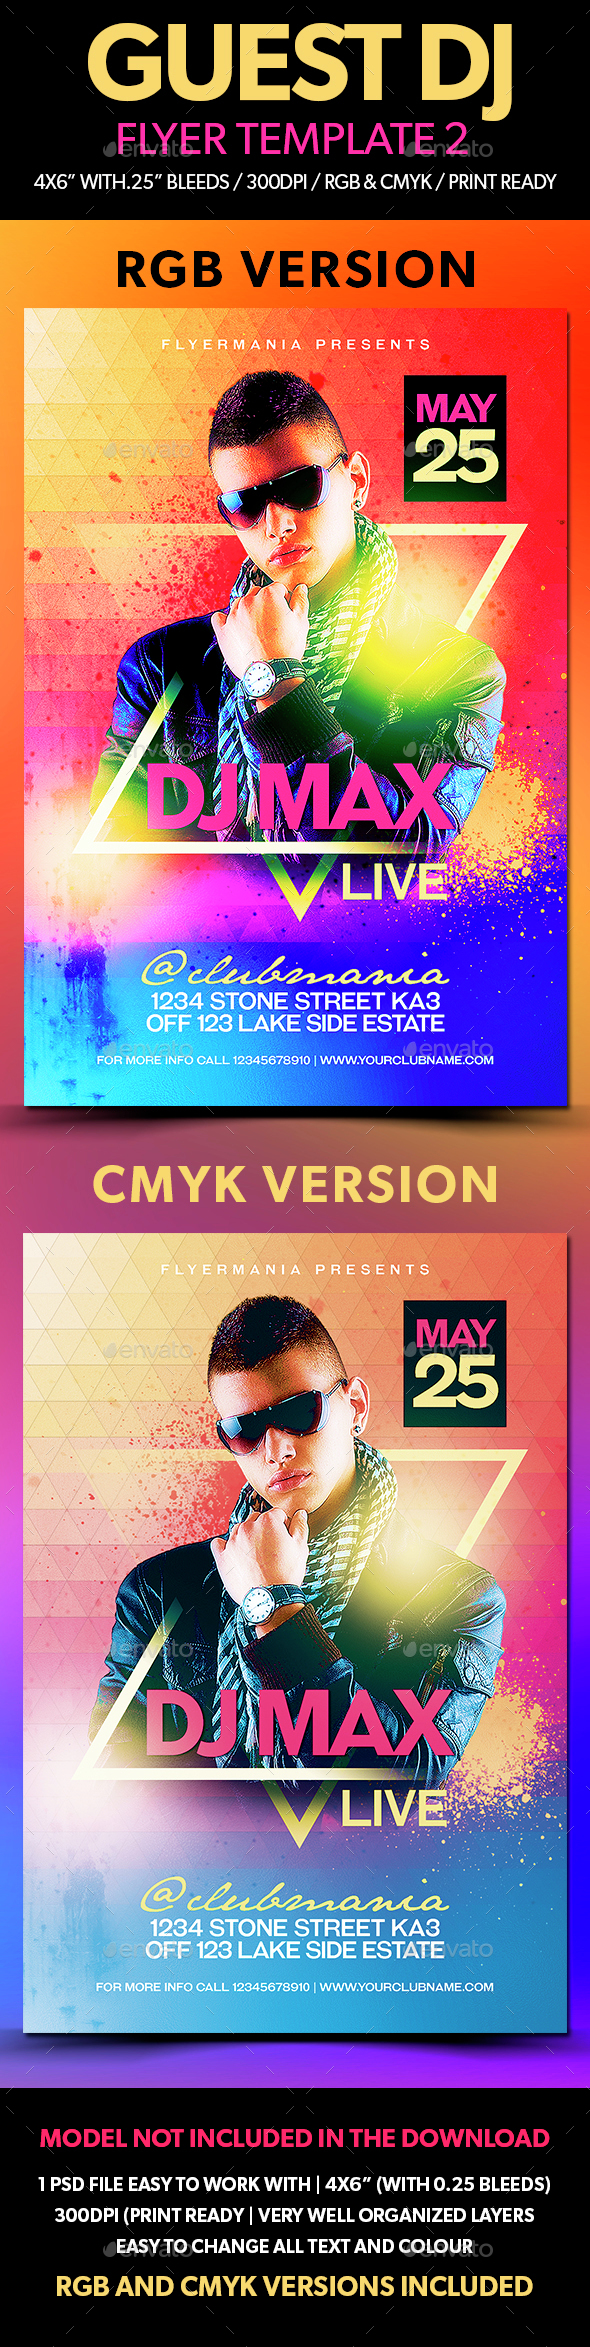 Guest DJ Flyer Template 2 - Clubs & Parties Events